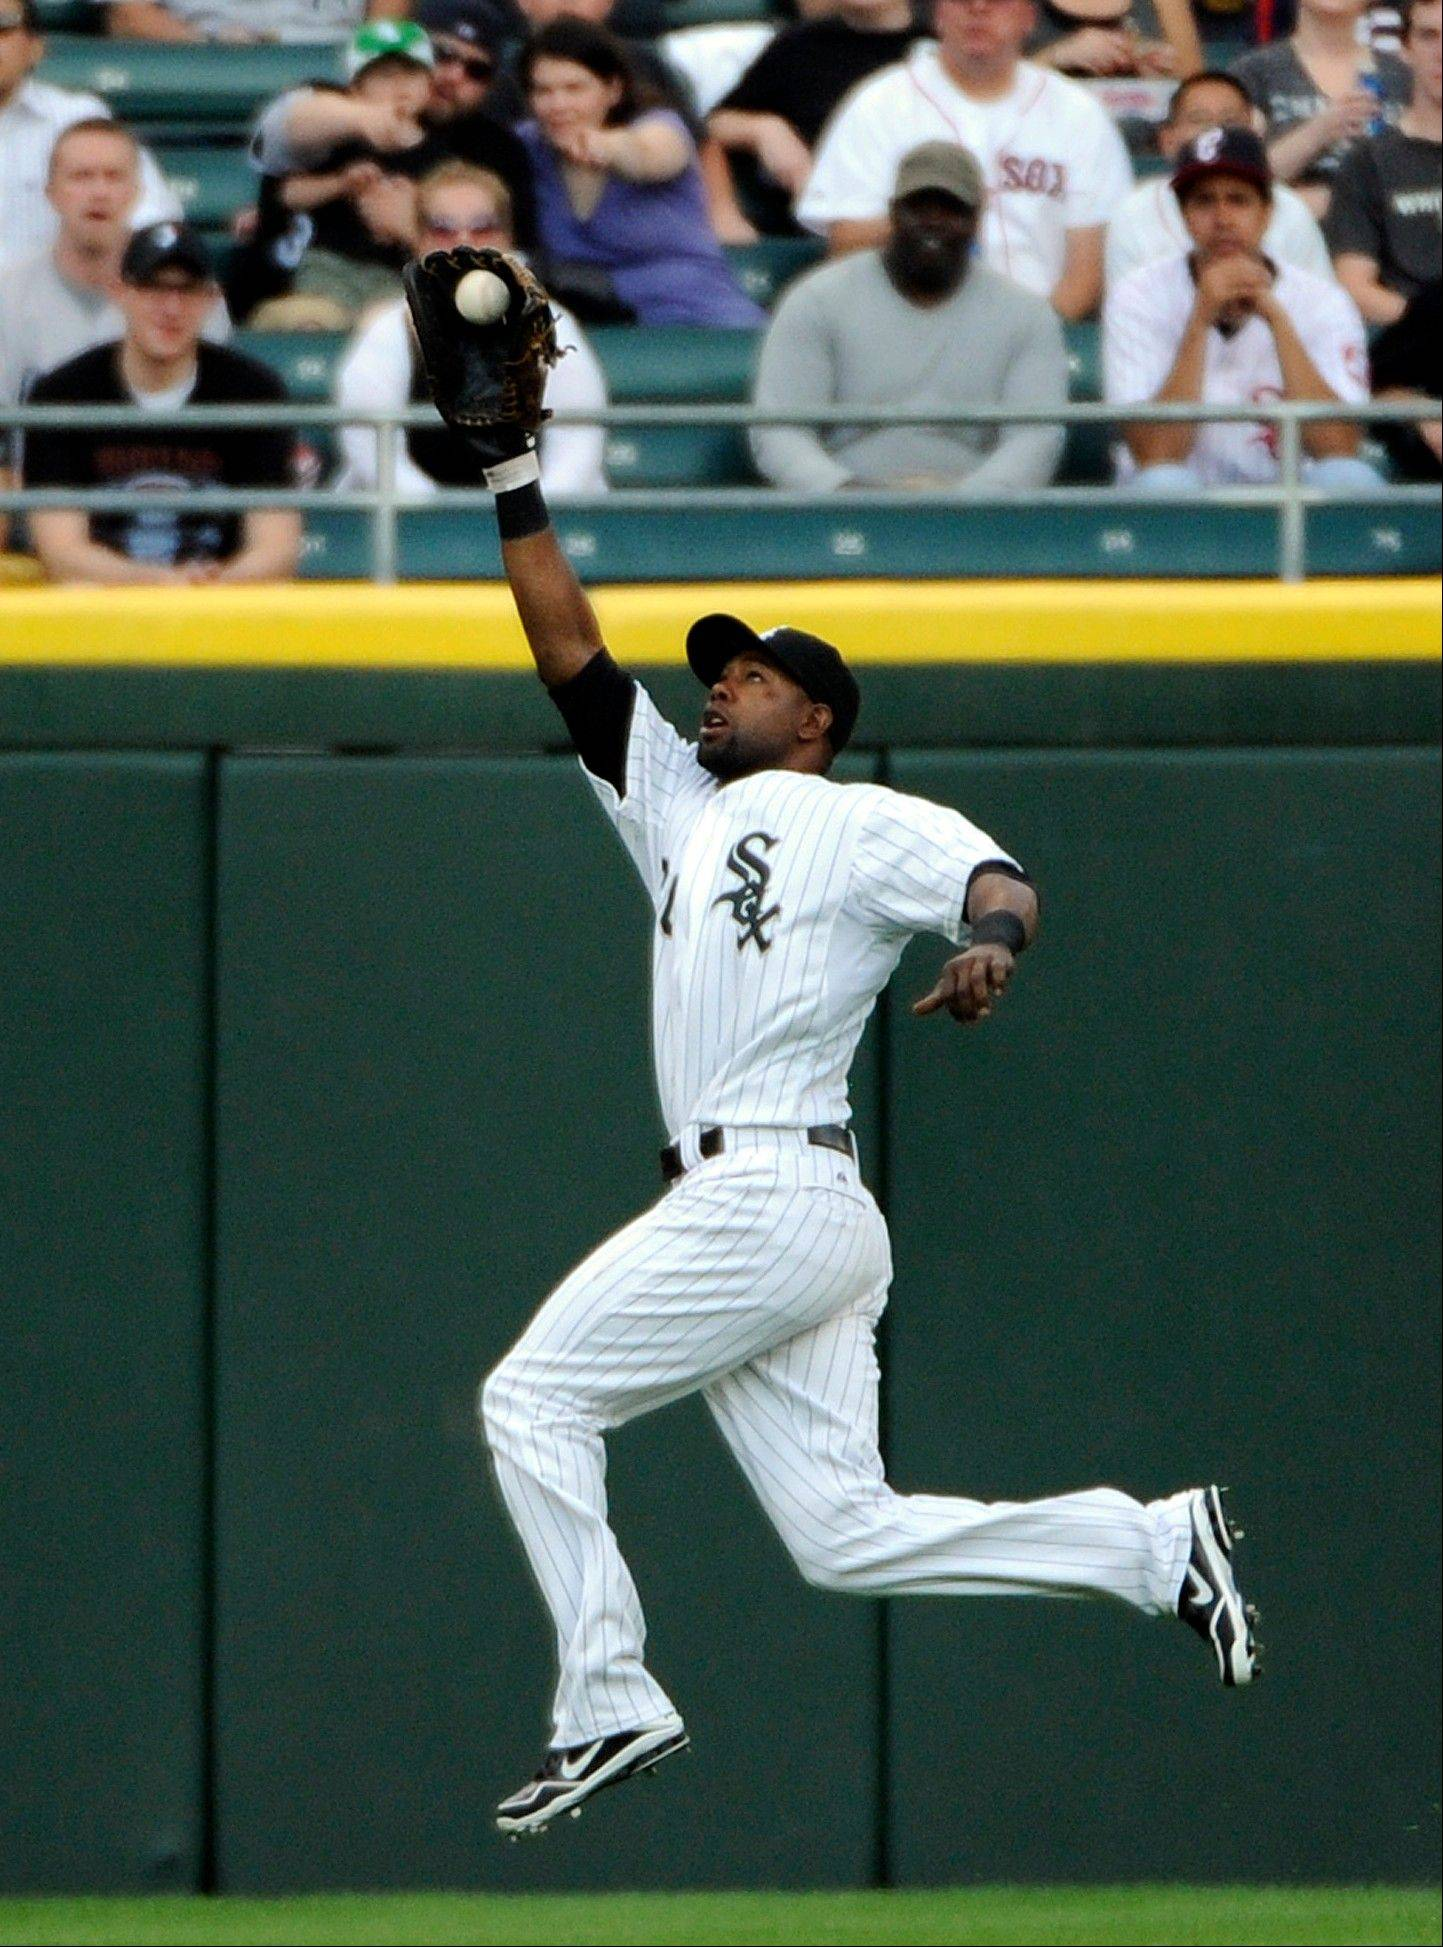 White Sox center fielder Alejandro De Aza makes a leaping catch on a ball hit by the Red Sox' Jacoby Ellsbury in the first inning Tuesday at U.S. Cellular Field.